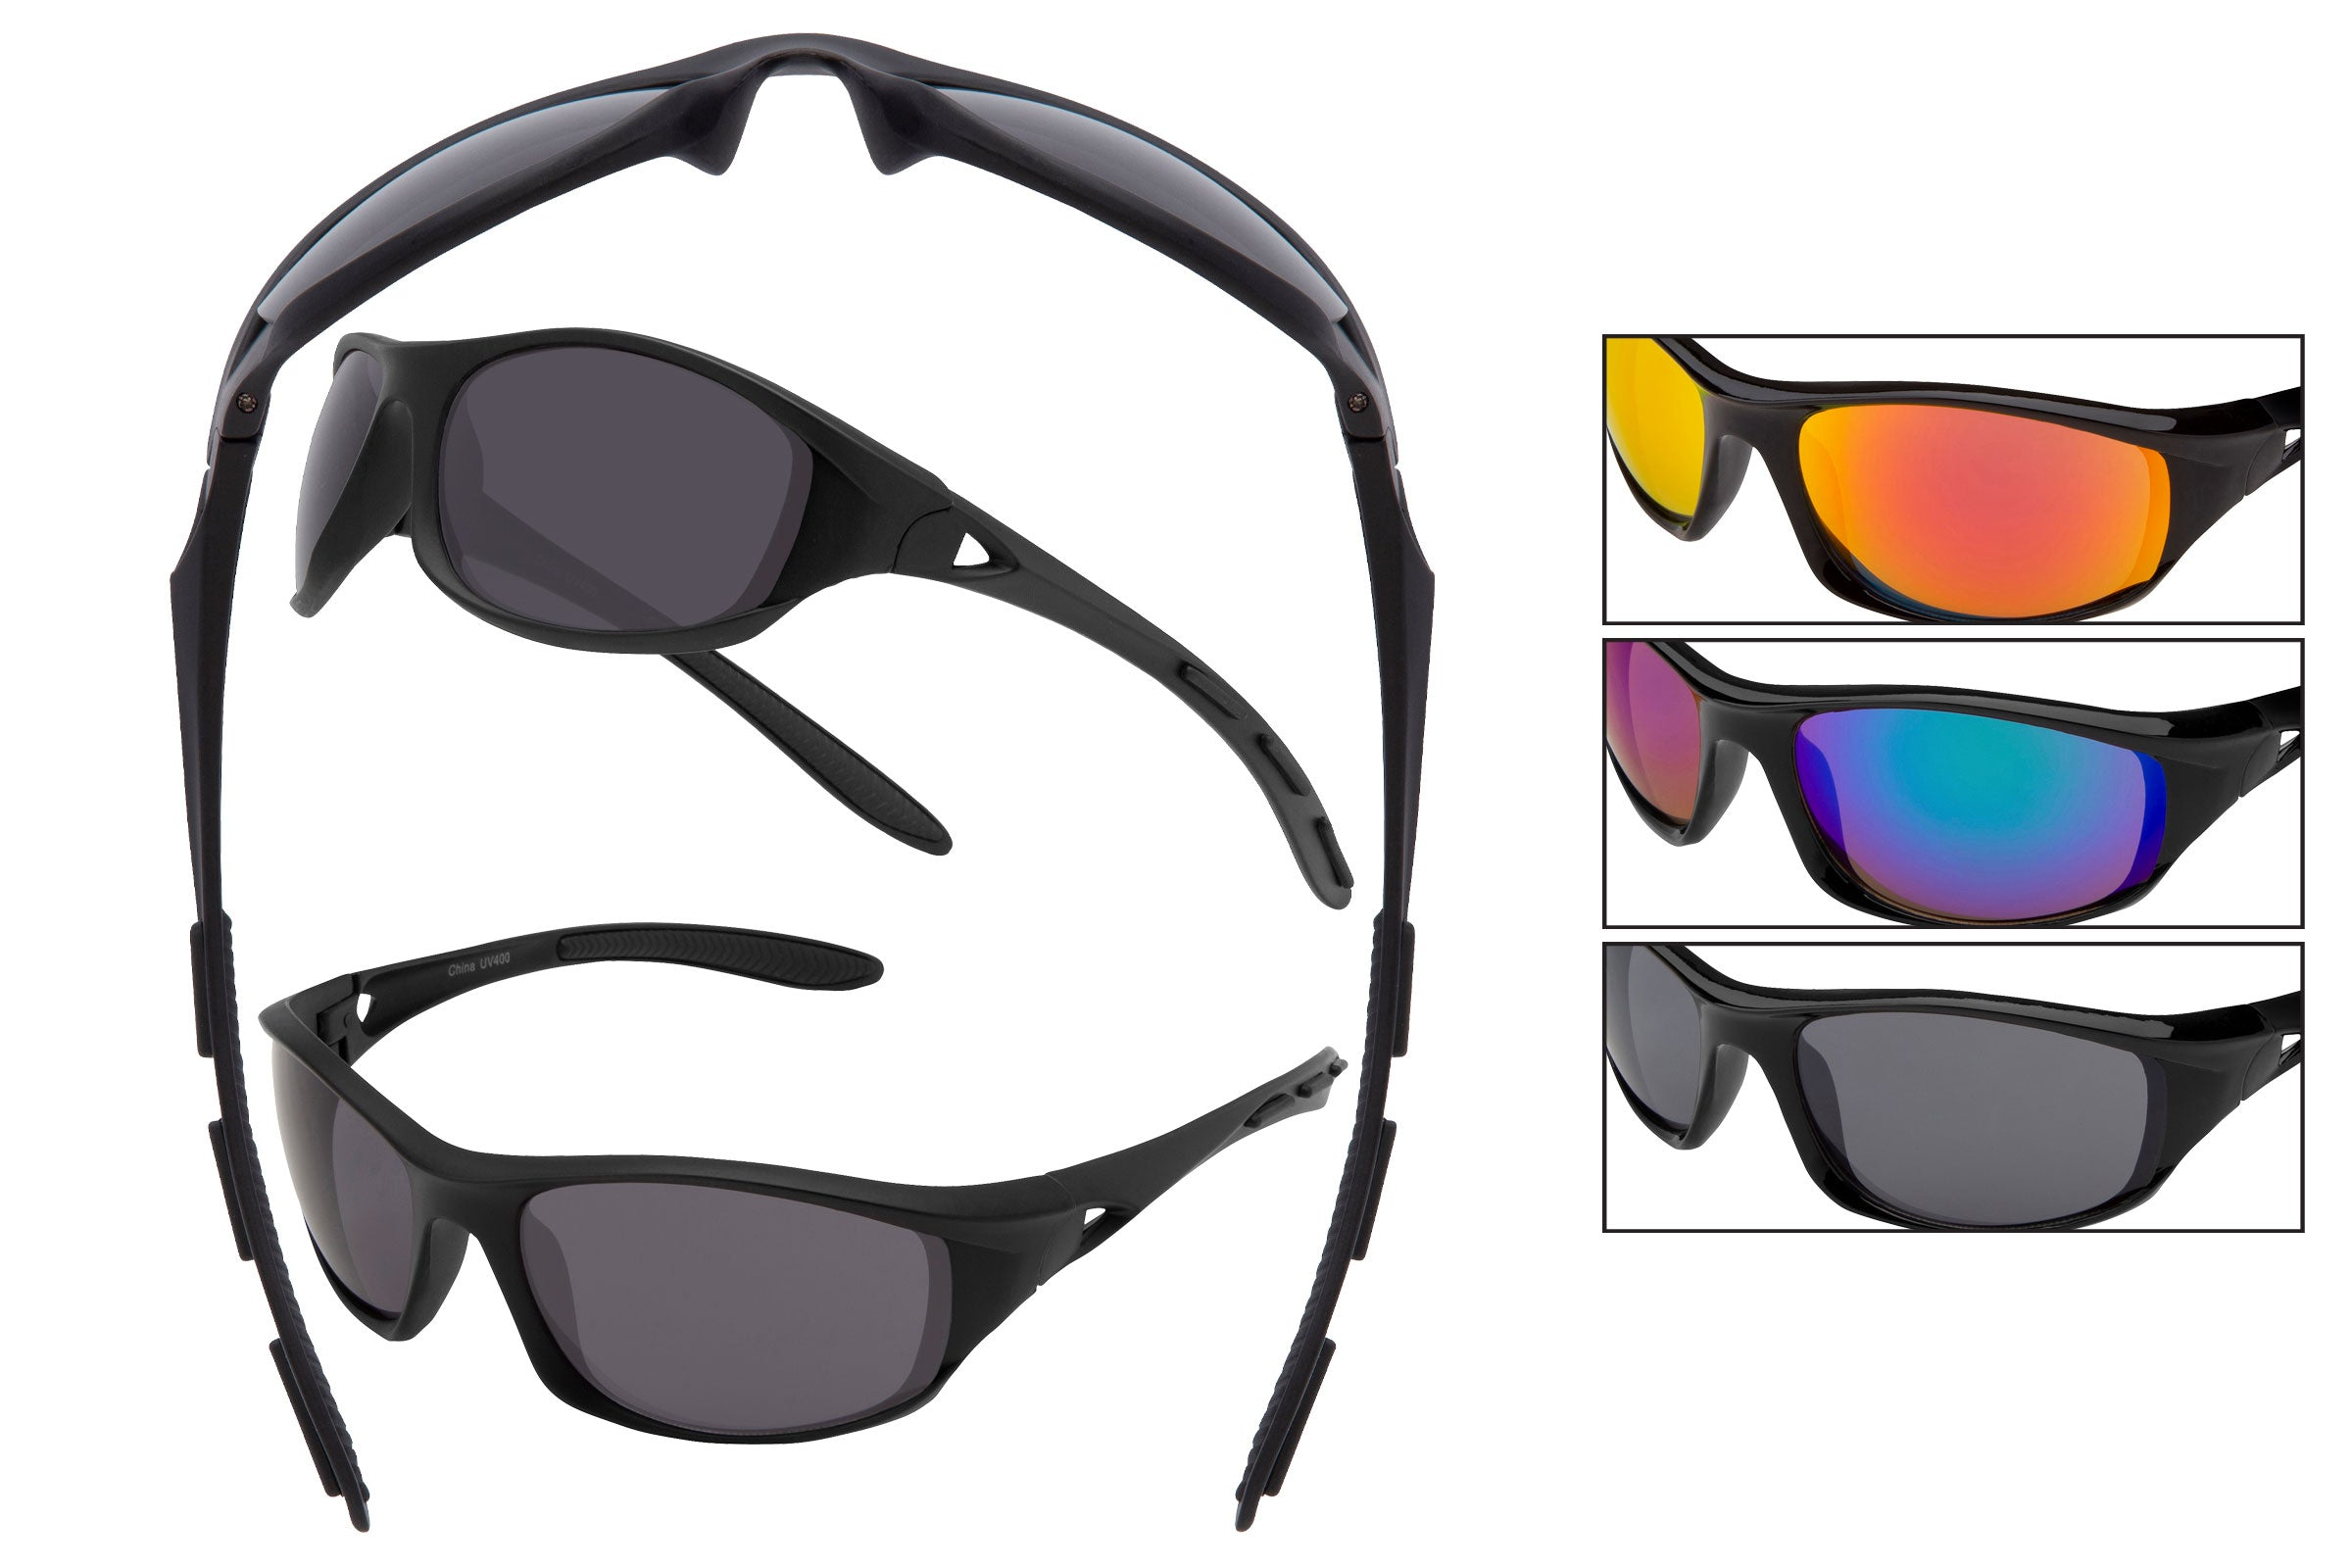 AD10 - Sports Wrap Sunglasses